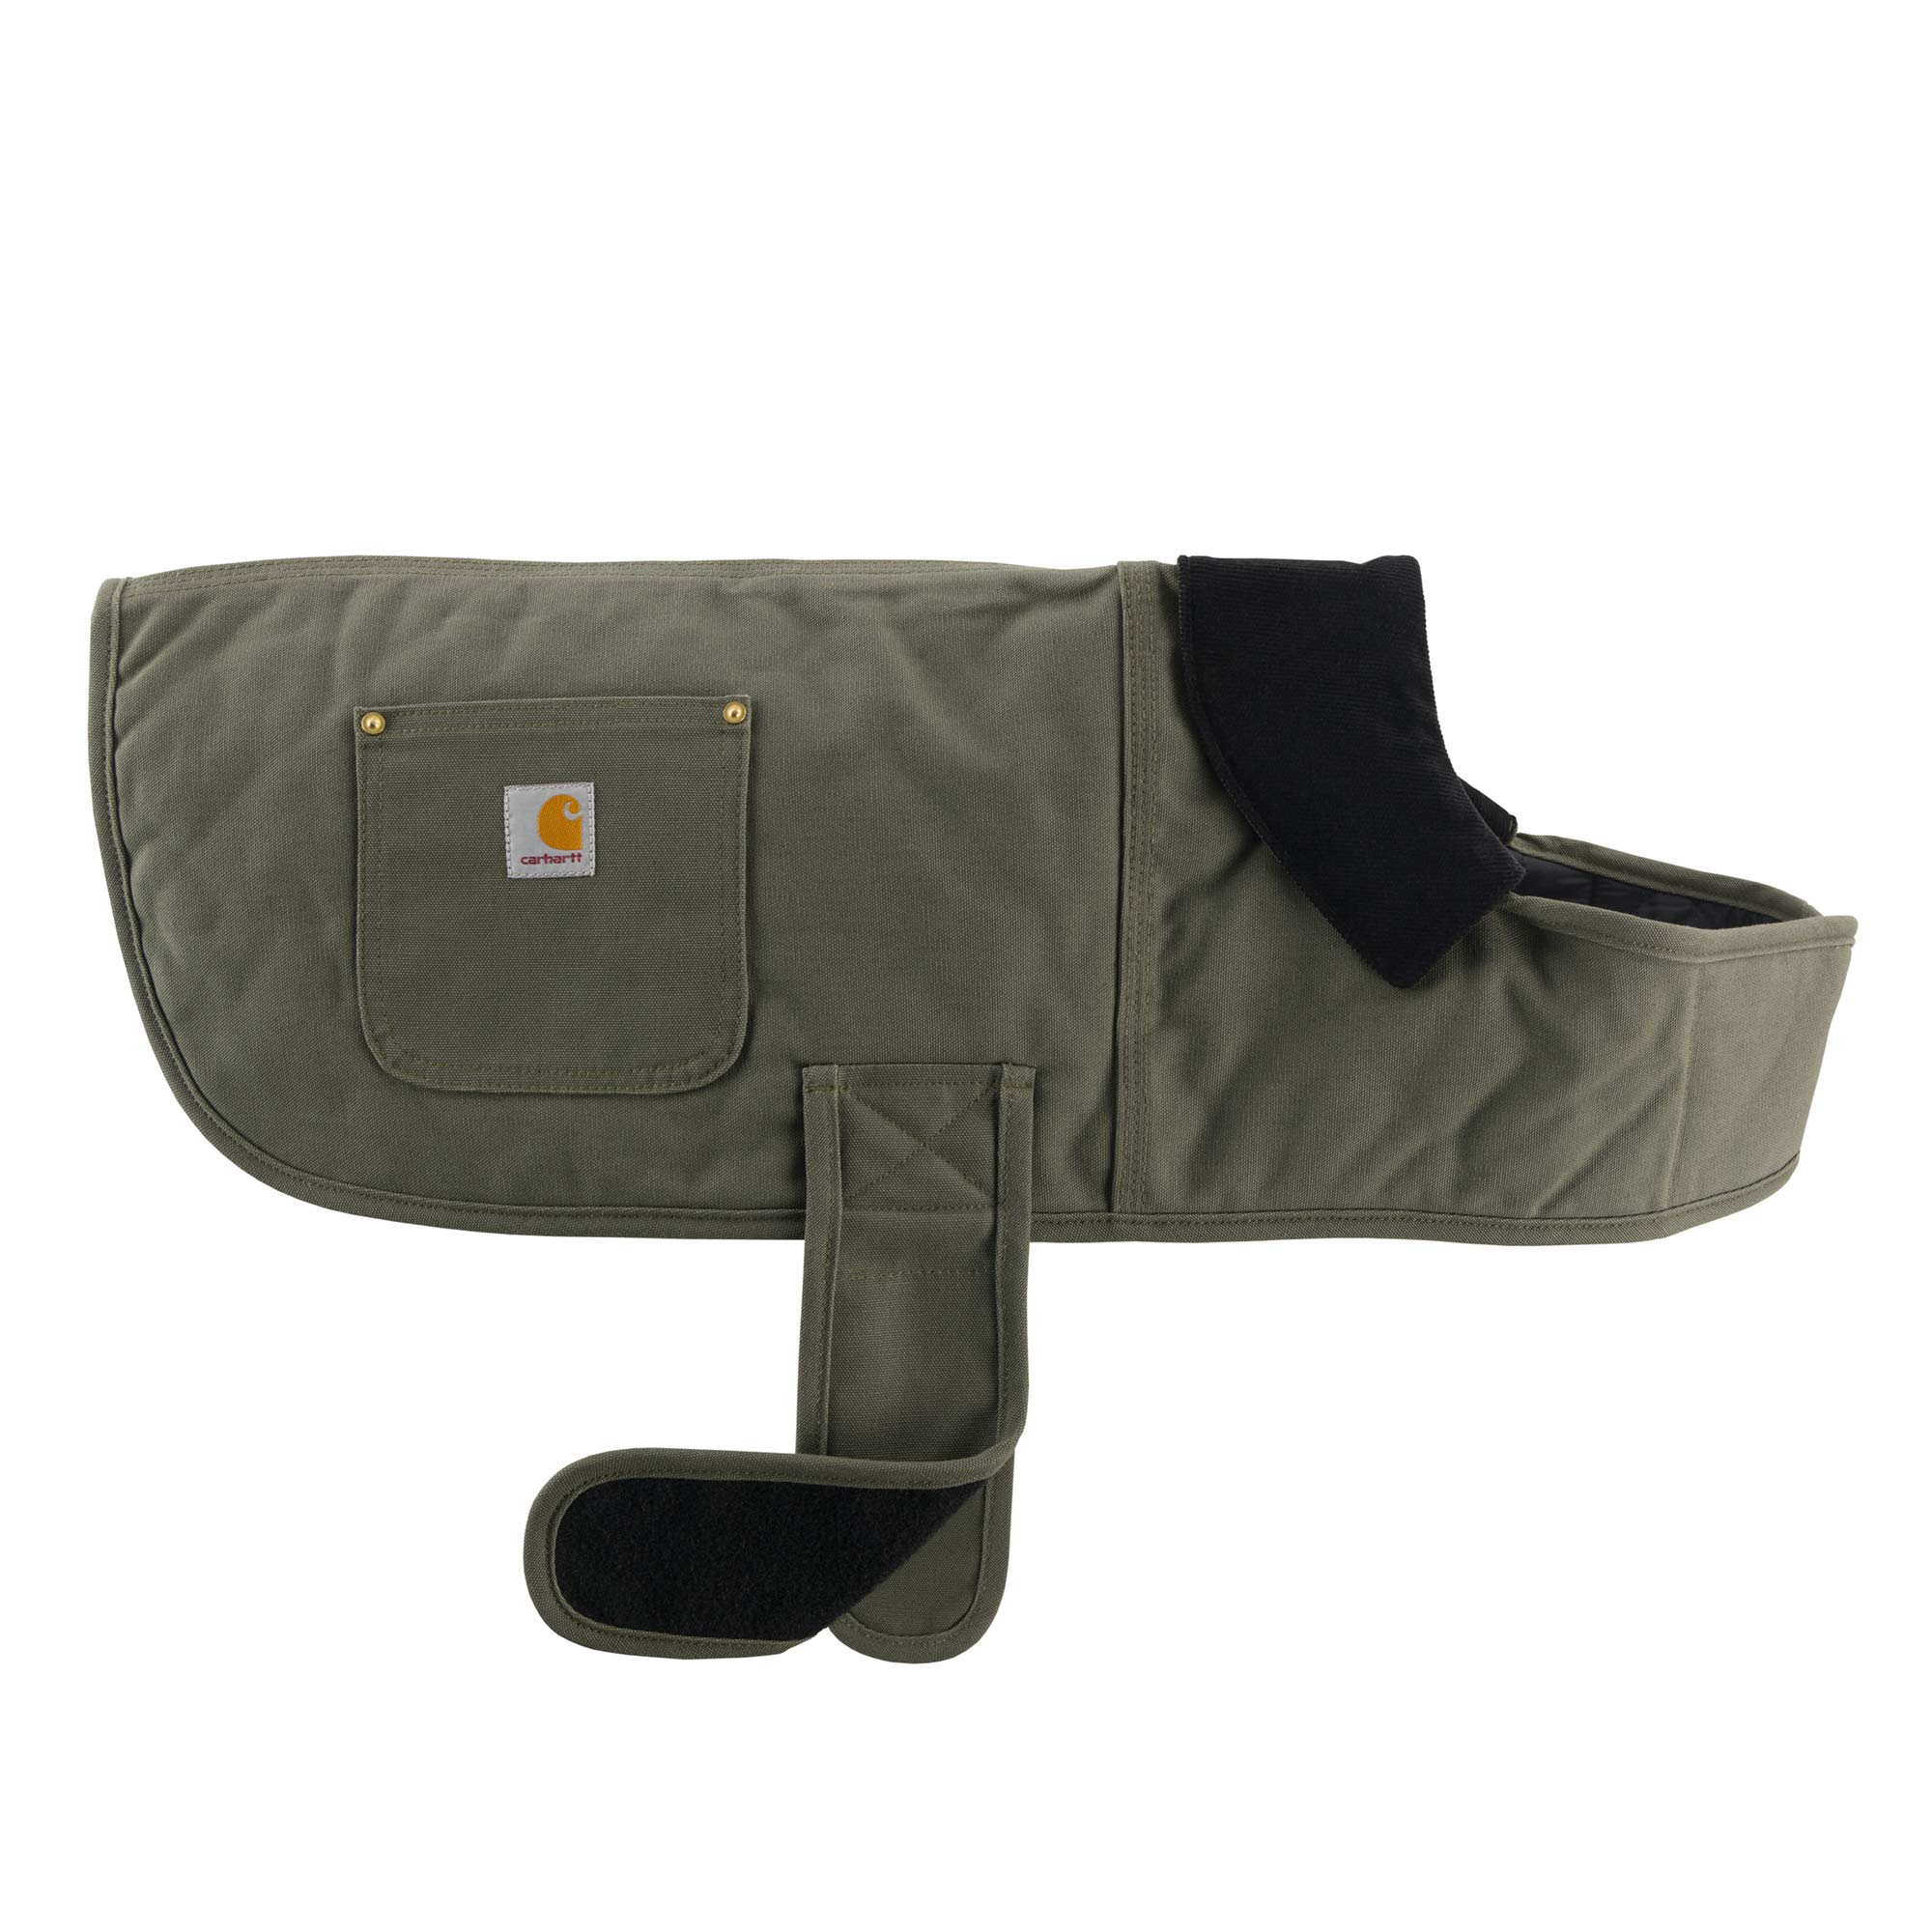 Carhartt Chore Coat, Dog Vest, Water Repellent Cotton Duck Canvas by Carhartt